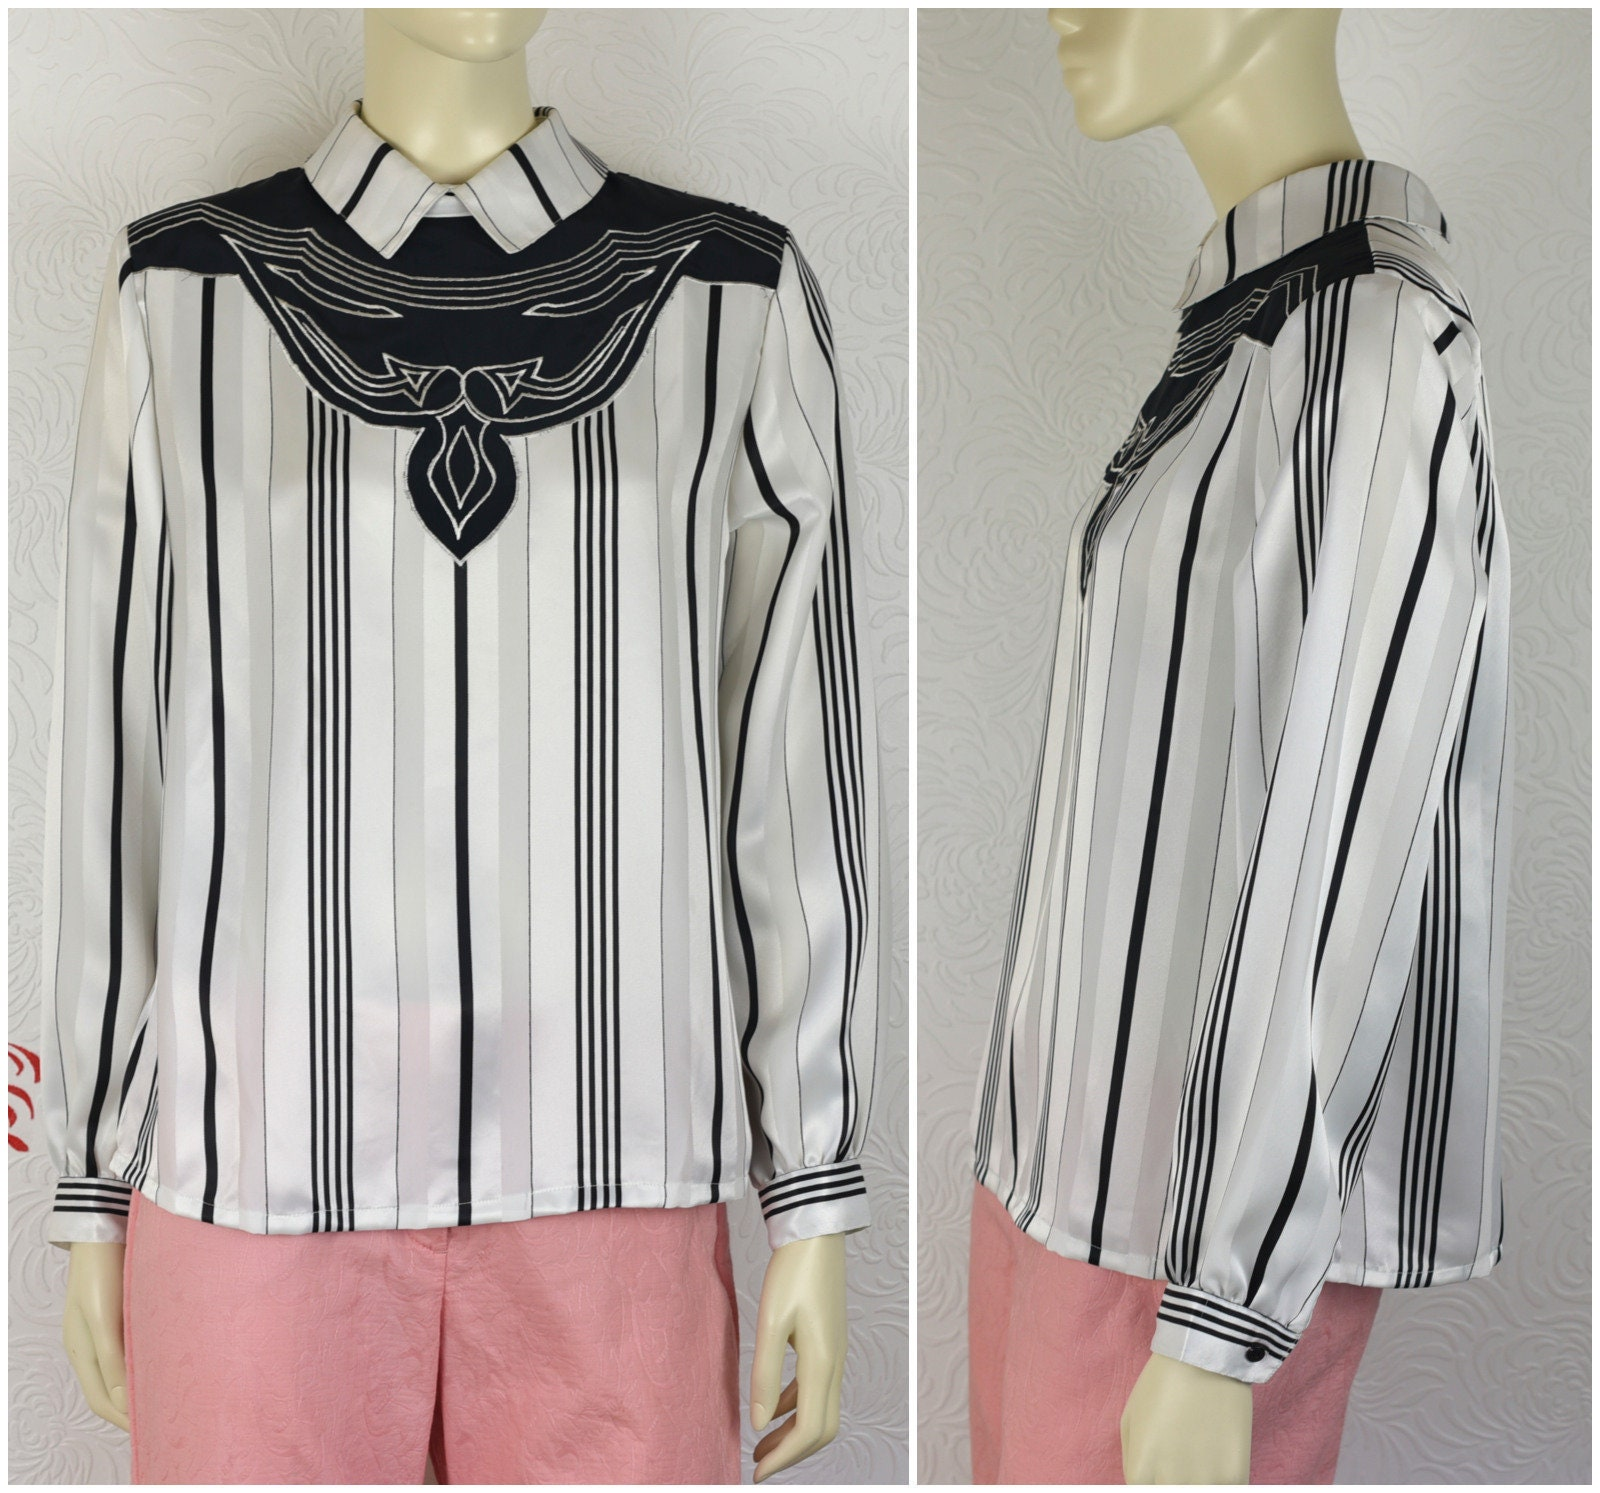 09a4e37b5a8f33 Vintage Striped Blouse Black & White Shirt Satin Blouse | Etsy